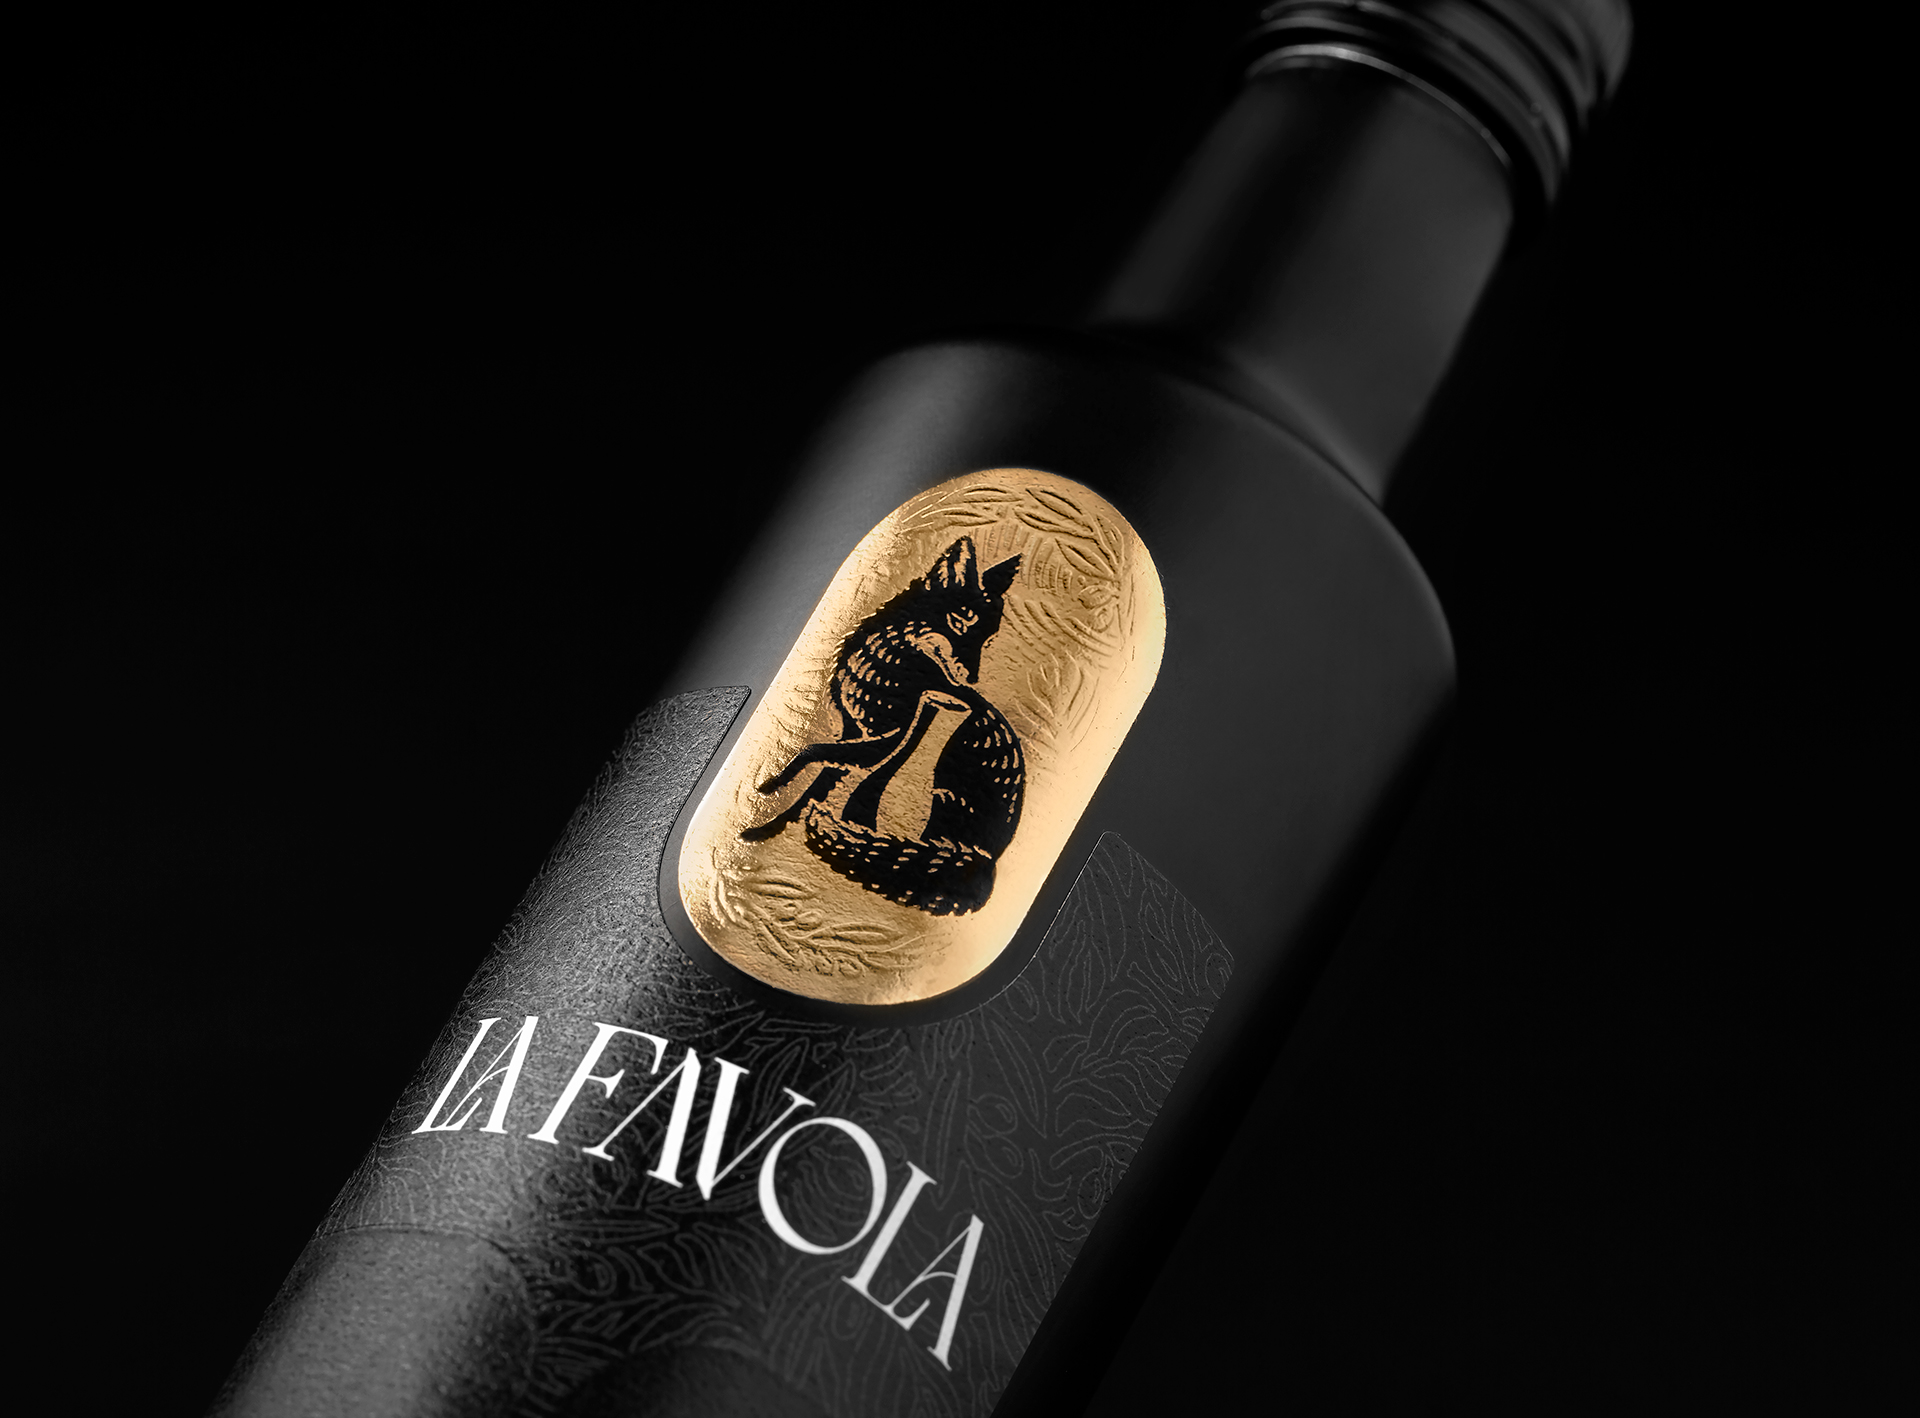 Holy Studio Created Packaging Design for La Favola Extra Virgin Olive Oil Born in Southern Brazil